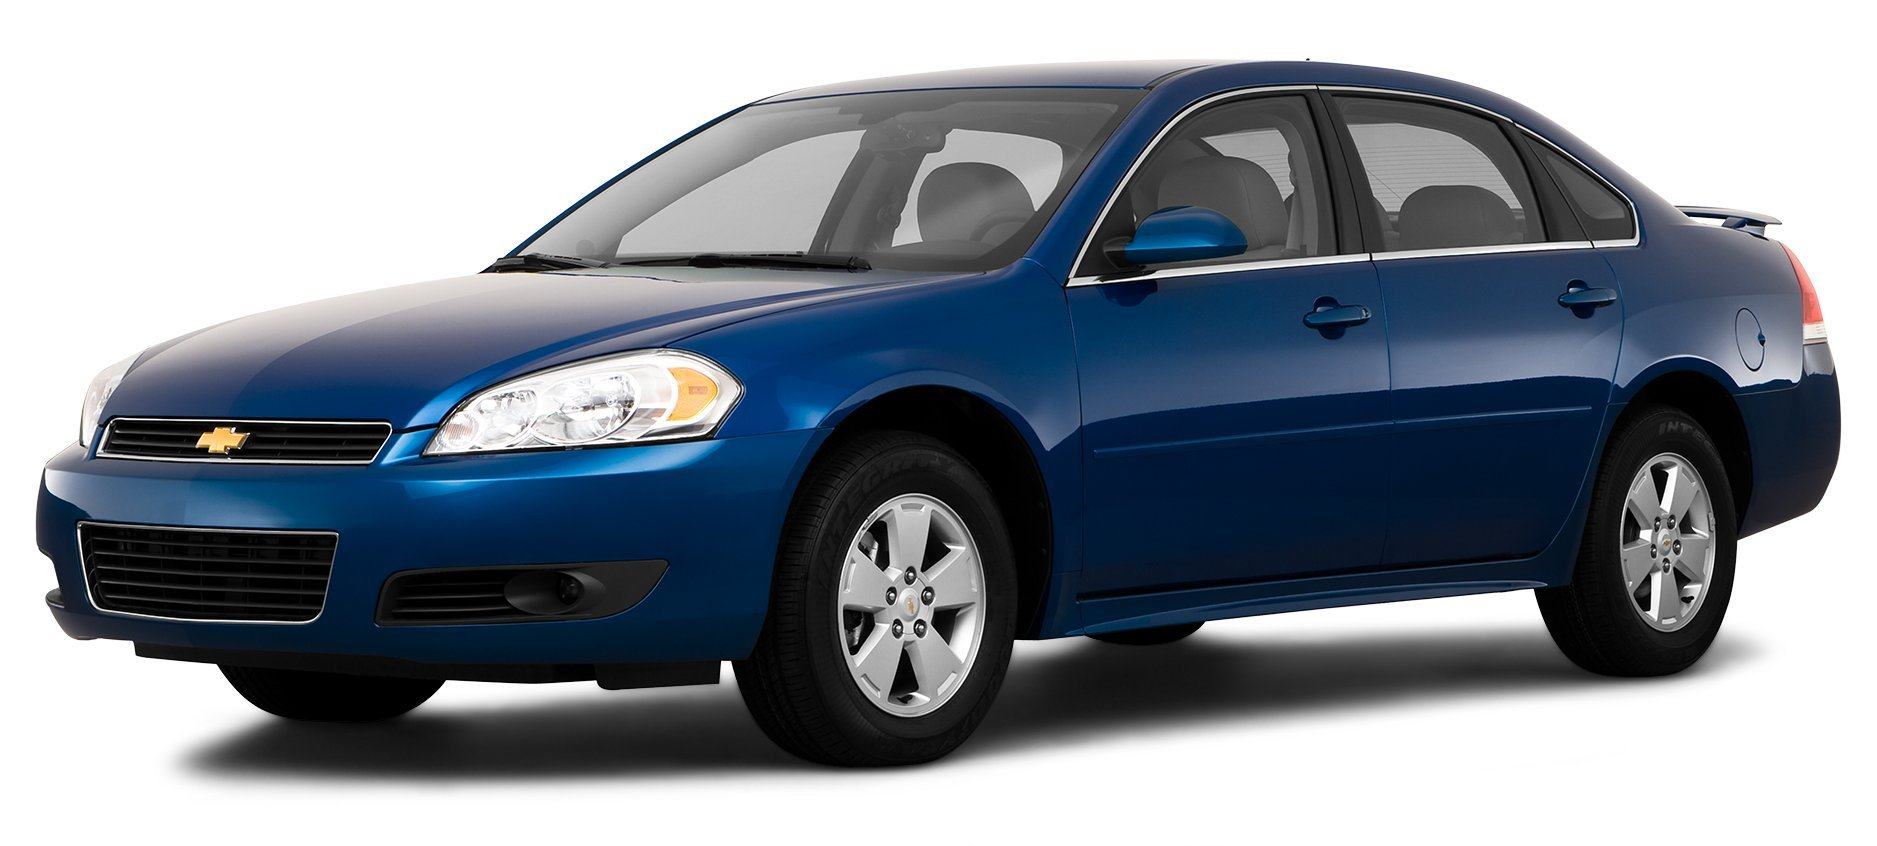 2010 chevrolet impala reviews images and specs vehicles. Black Bedroom Furniture Sets. Home Design Ideas